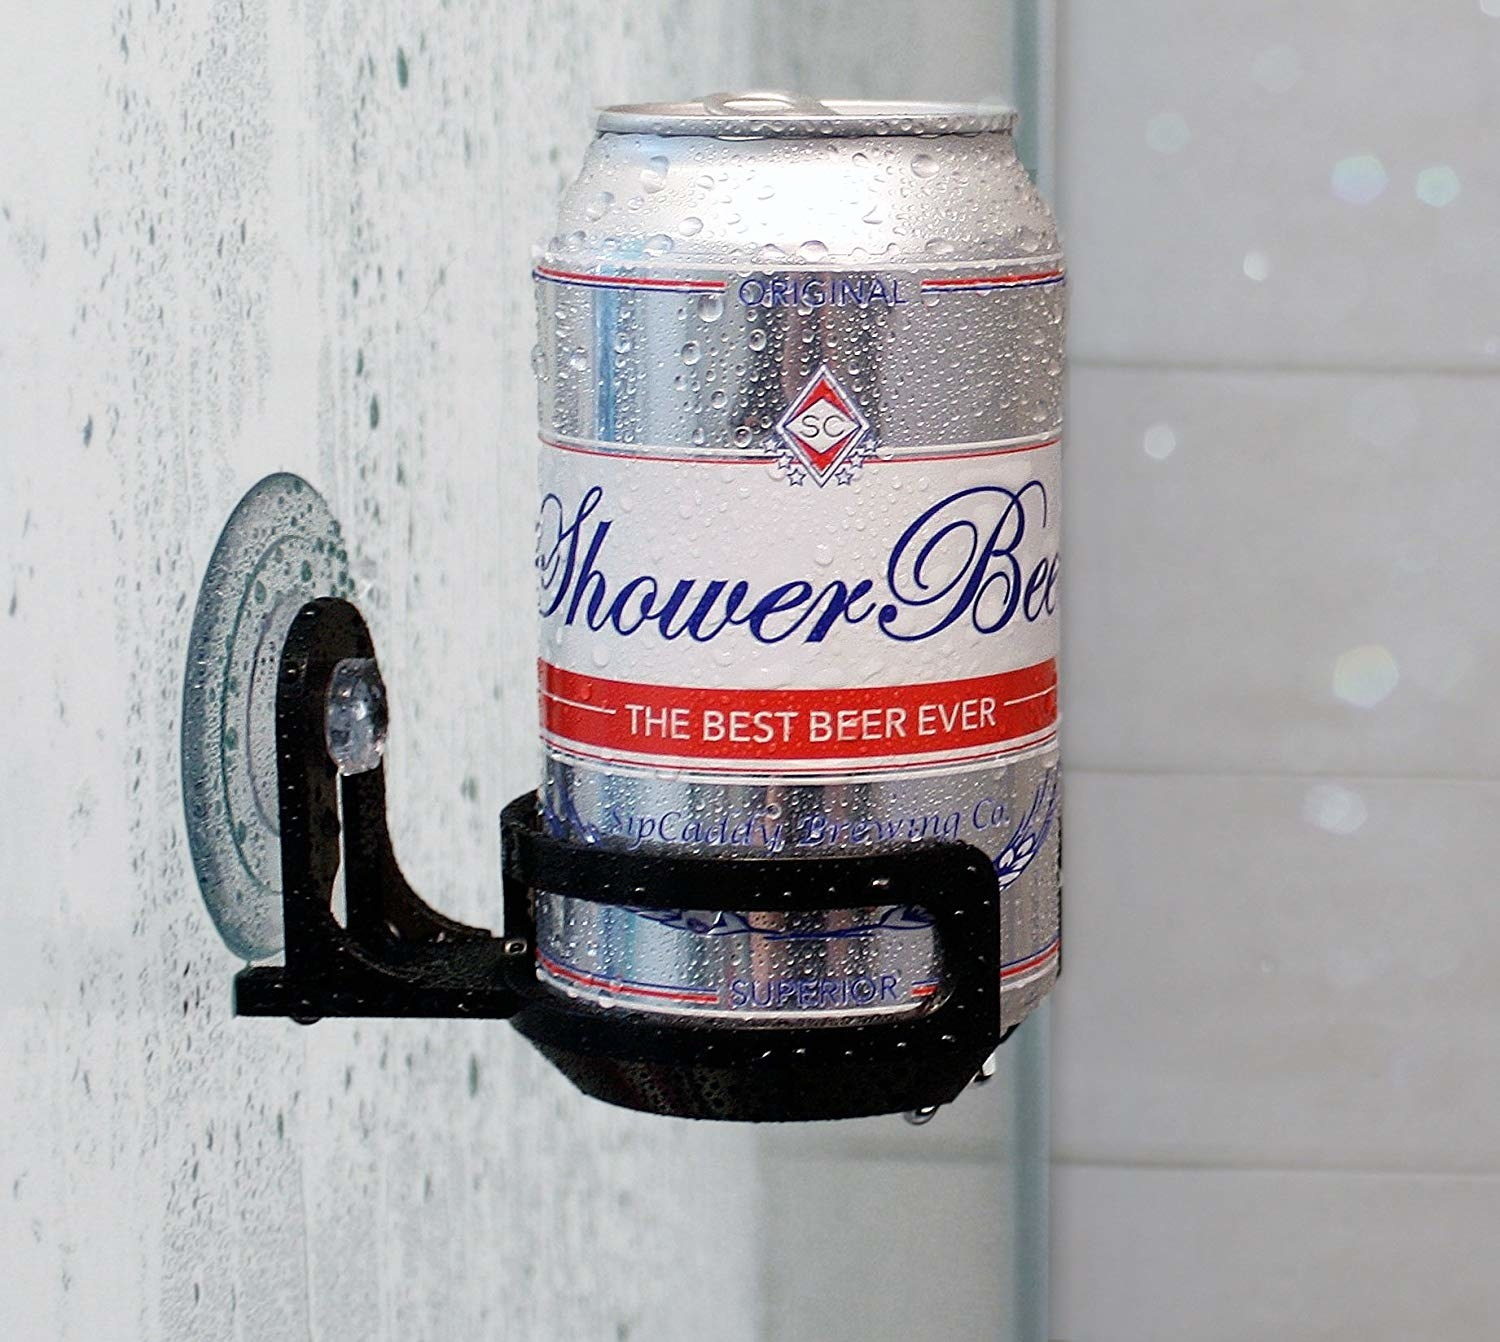 A beer can in the shower drink holder